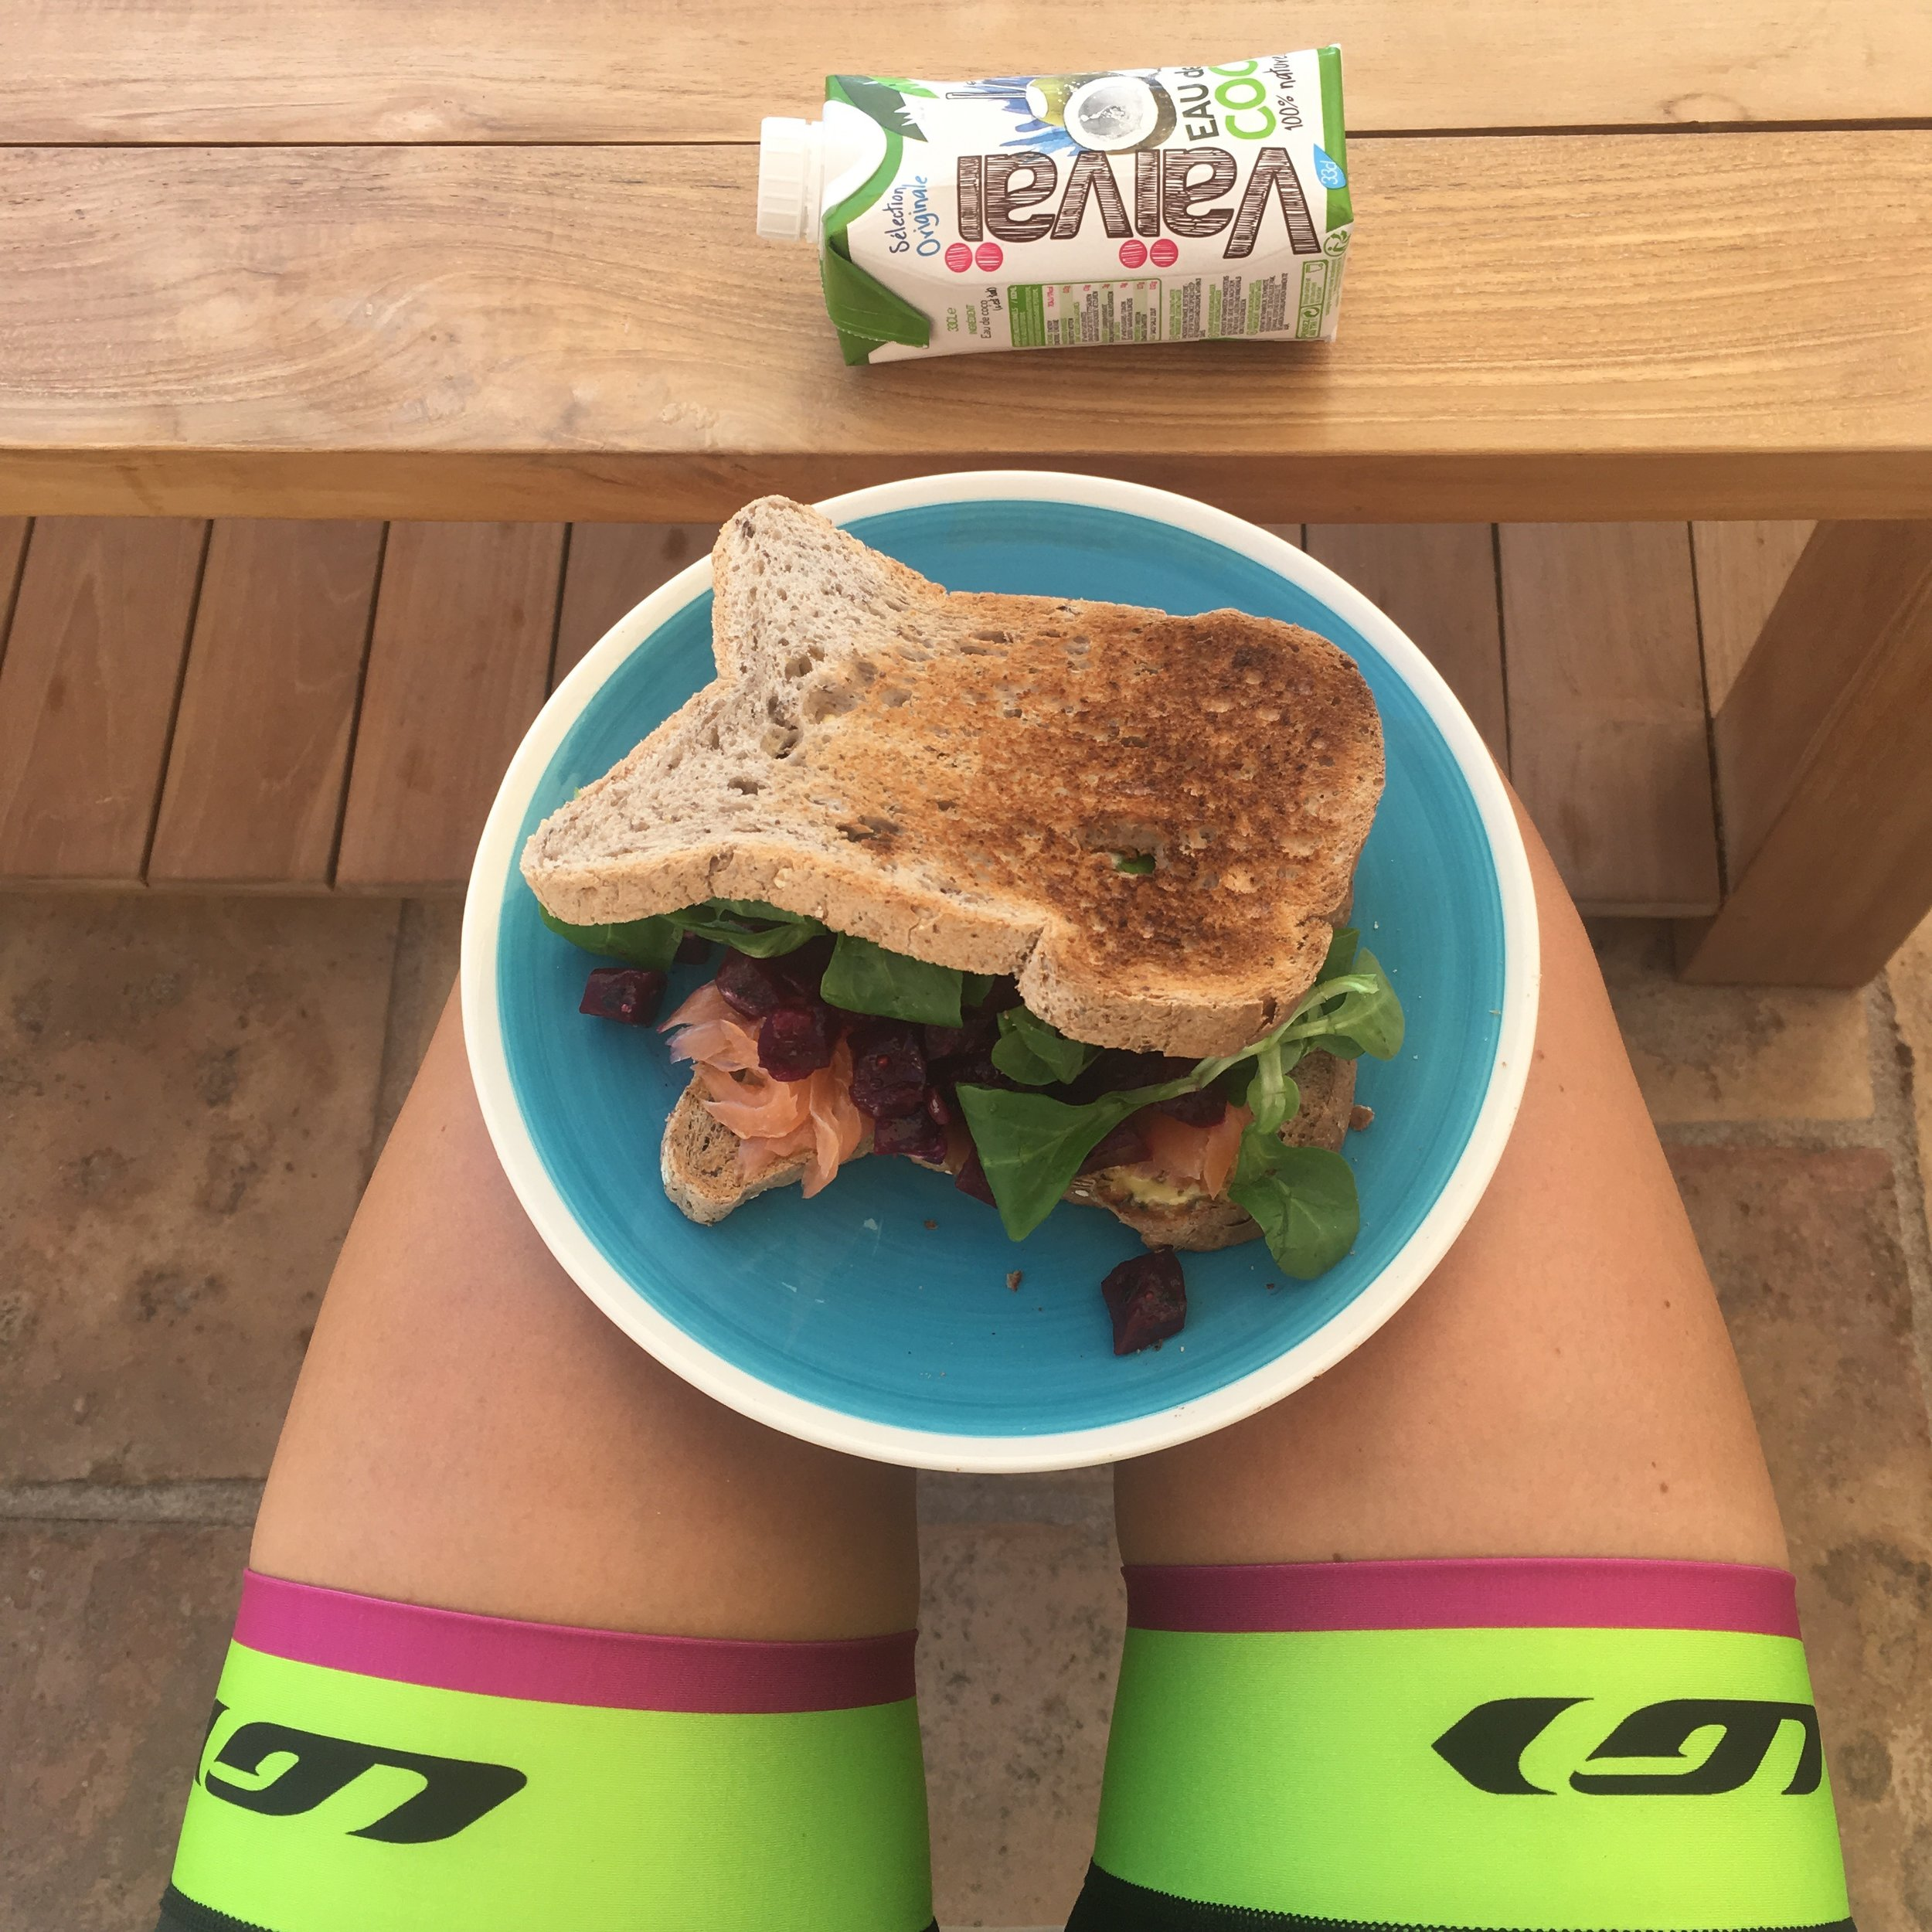 Post ride meal